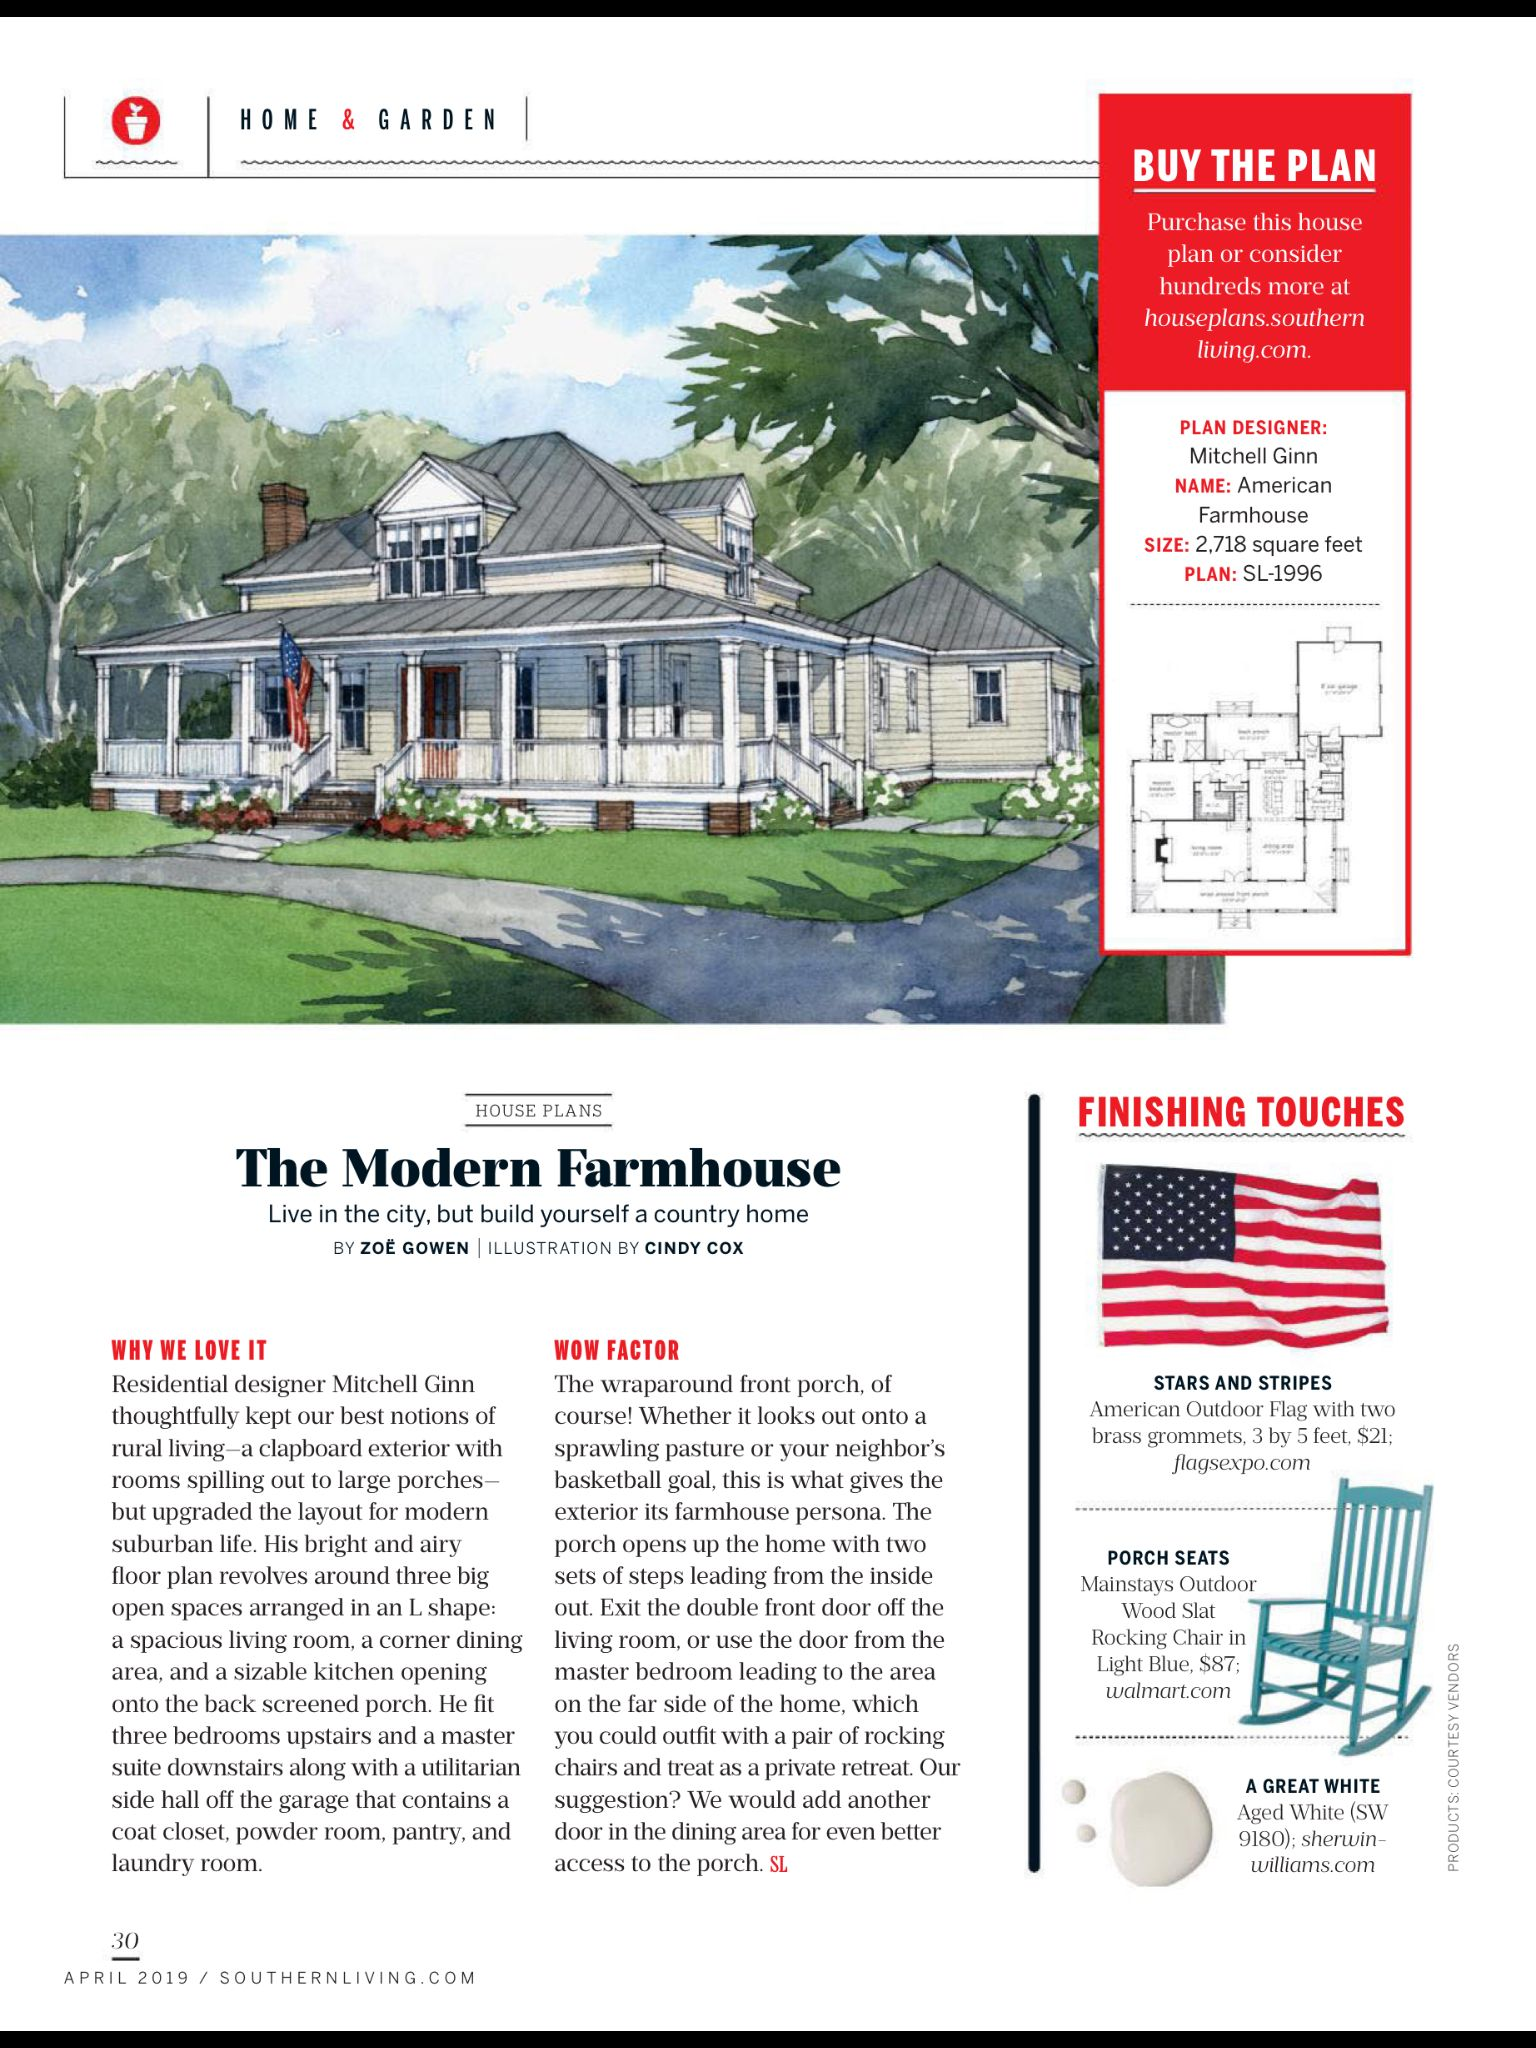 House Plans Live In The City But Build A Country Home From Southern Living April 2019 Read It On The Textu House Plans American Farmhouse Southern Living